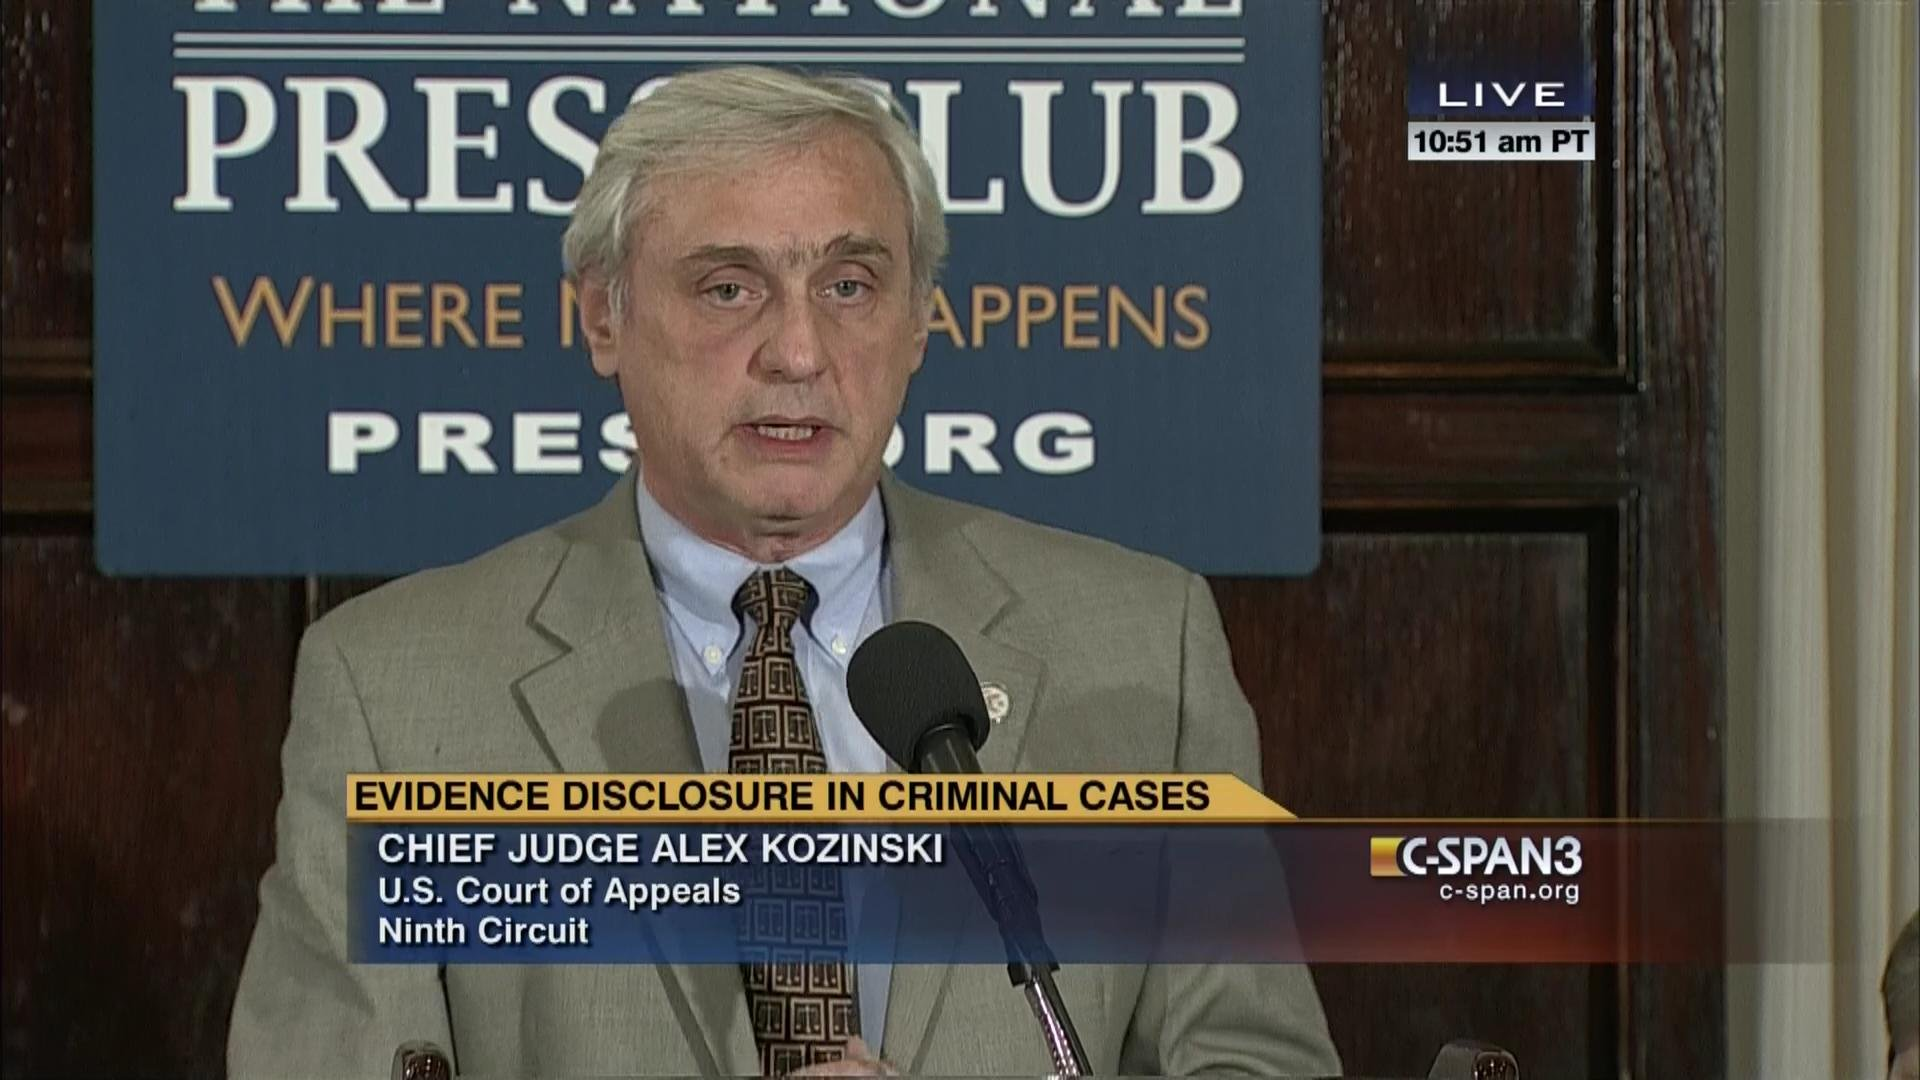 Federal Judge Kozinski retires as sexual misconduct inquiry launched